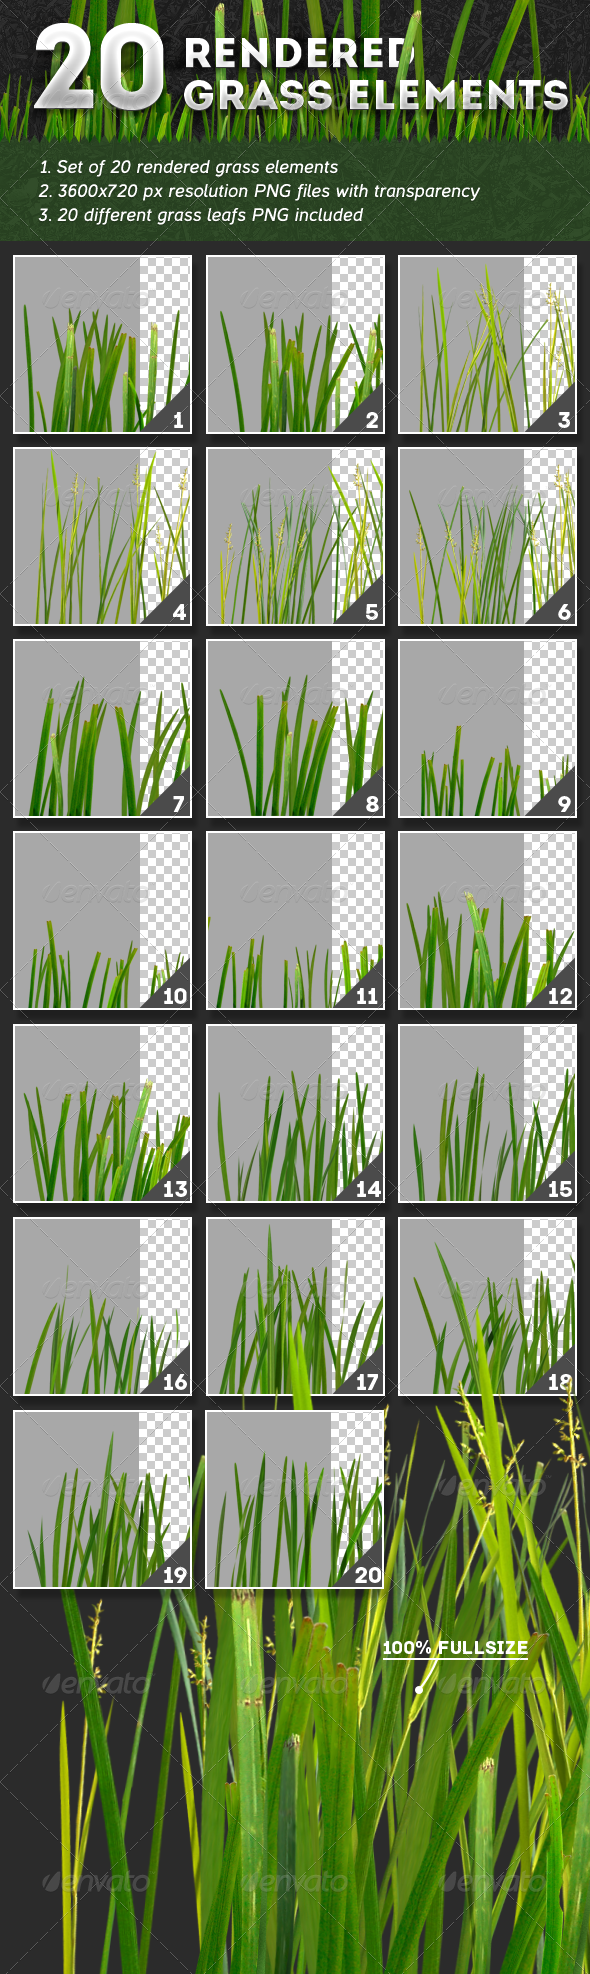 20 Rendered Grass Elements - 3D Backgrounds